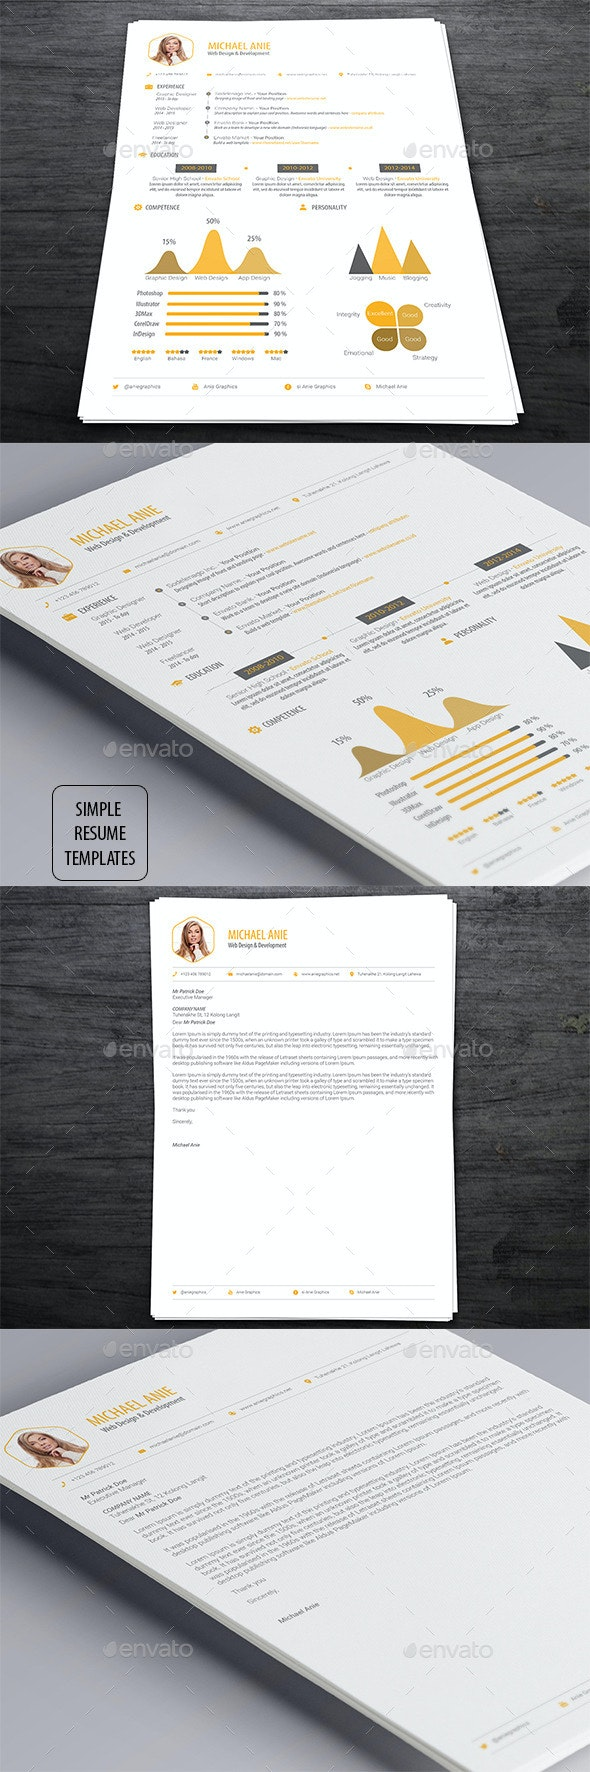 Simple Resume Templates - Resumes Stationery